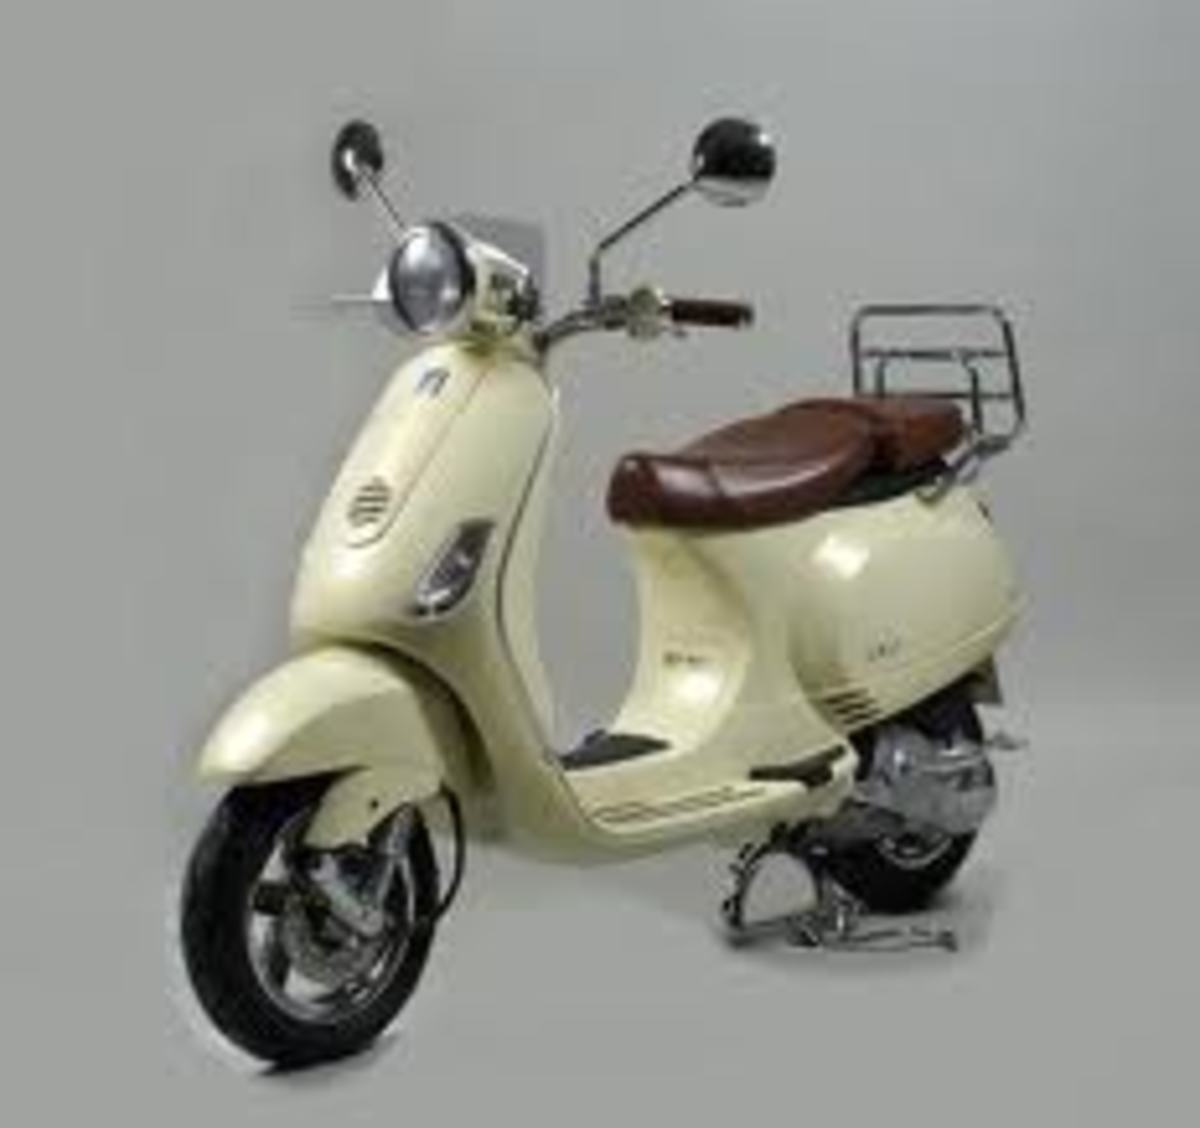 The Italian Vespa..a classic Mod accessory